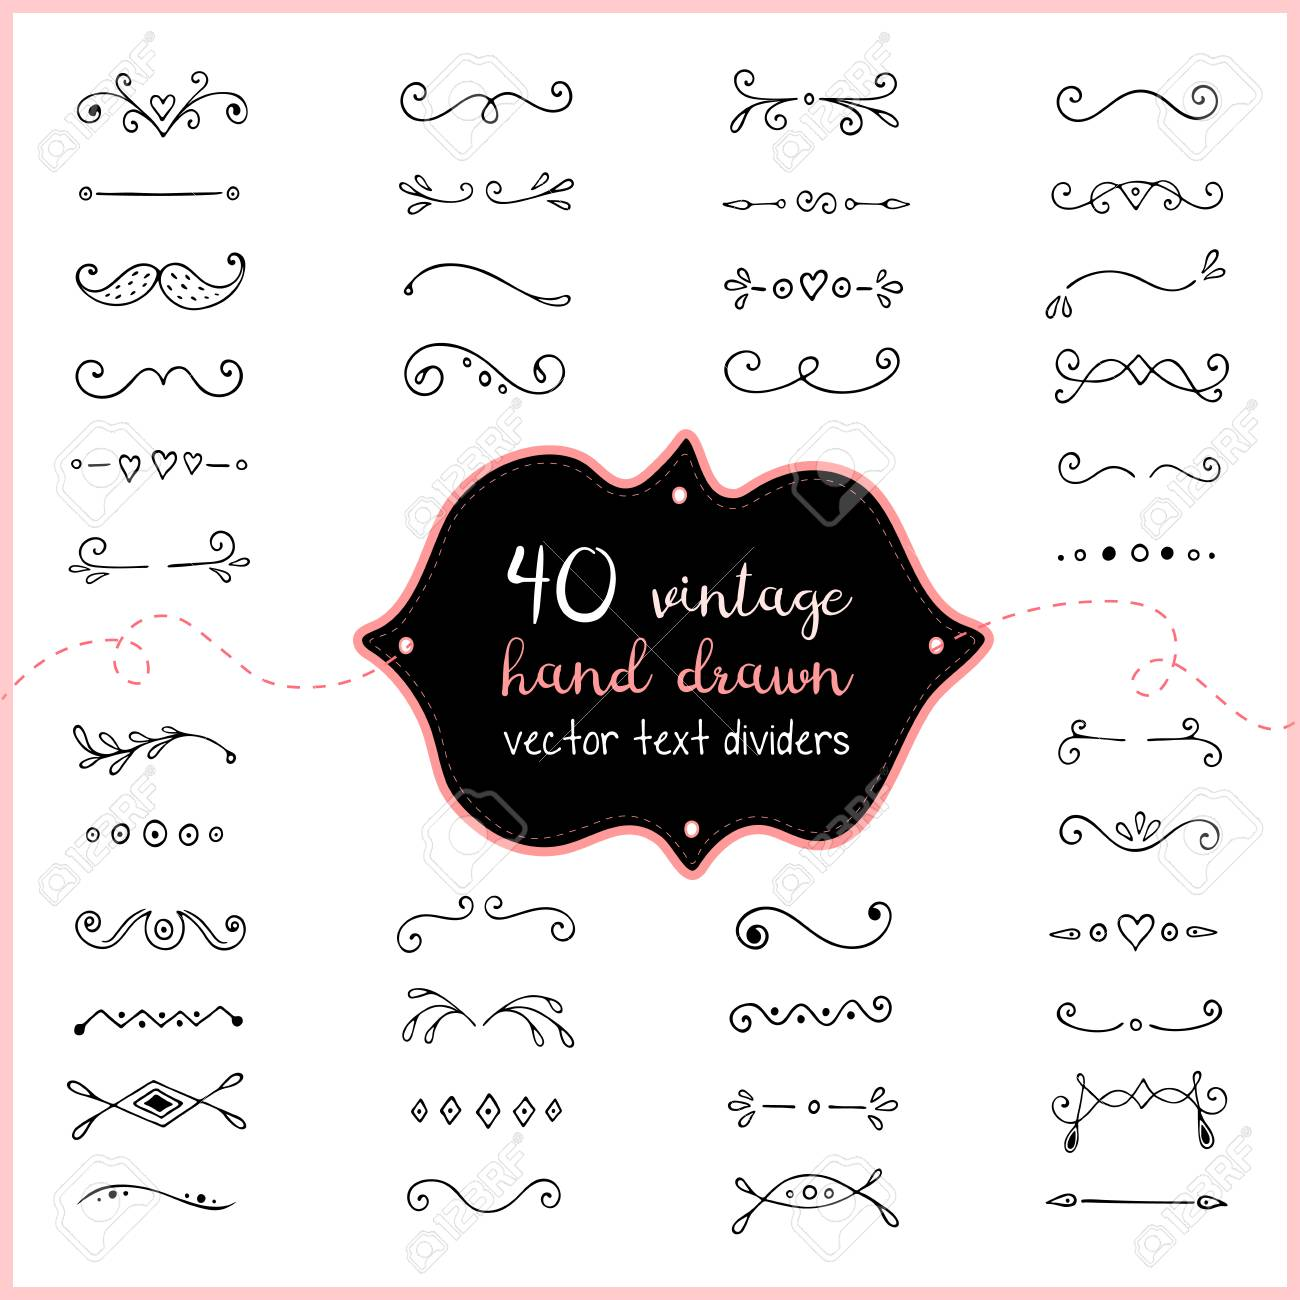 Hand drawn text dividers vector, doodle dividers vintage decorations.